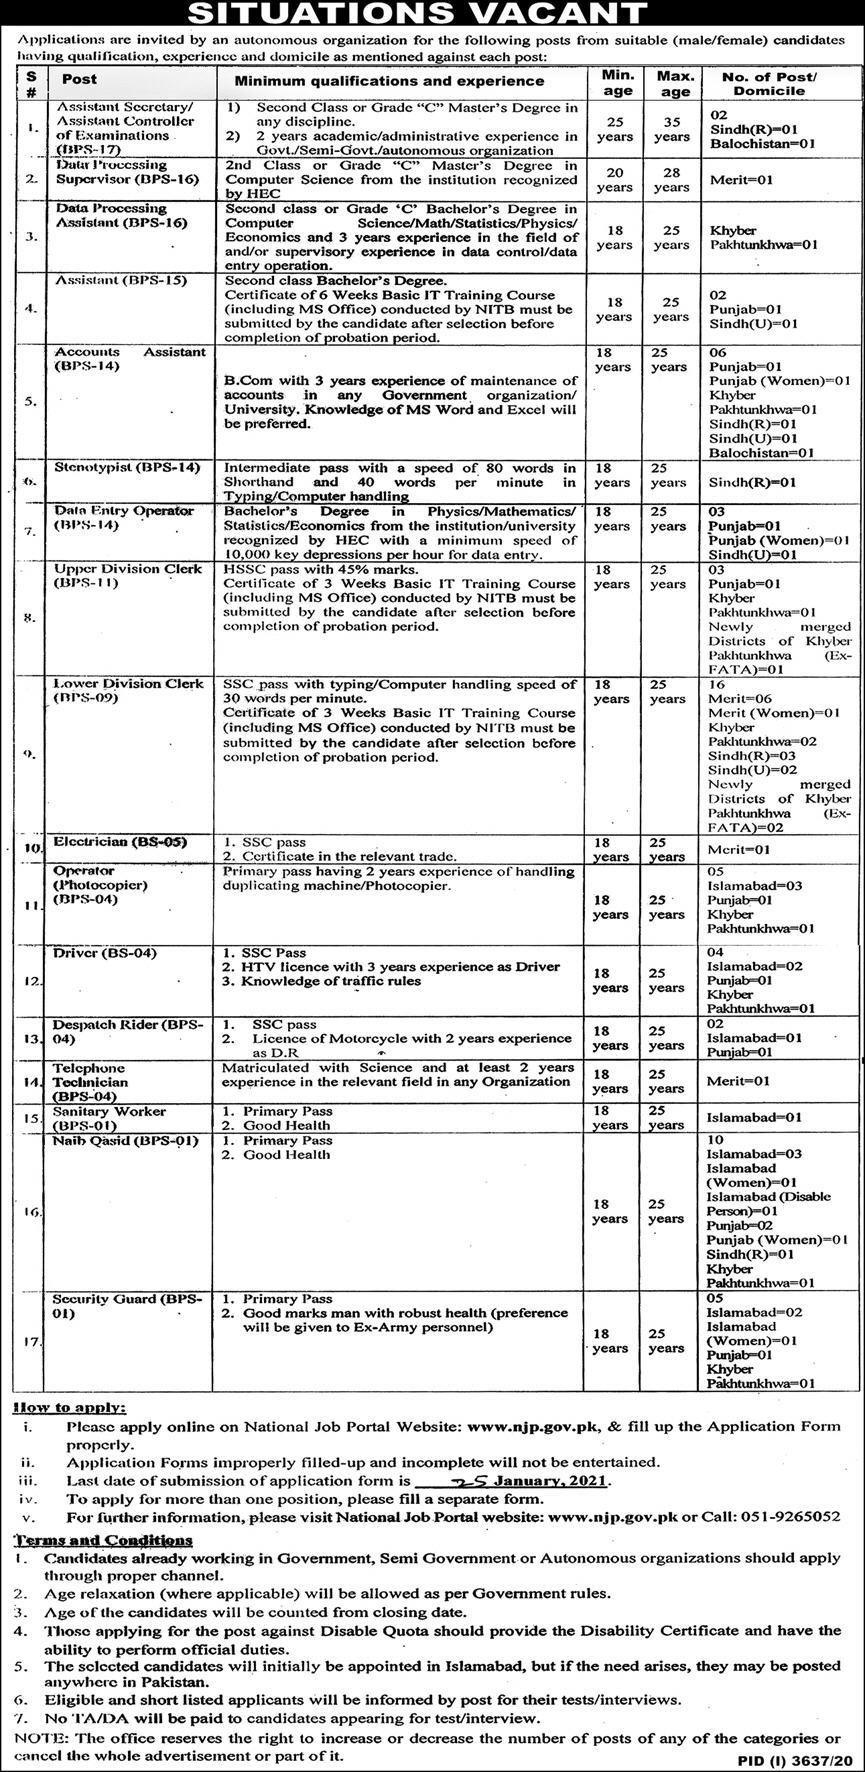 Autonomous Organization Pakistan Jobs January 2021